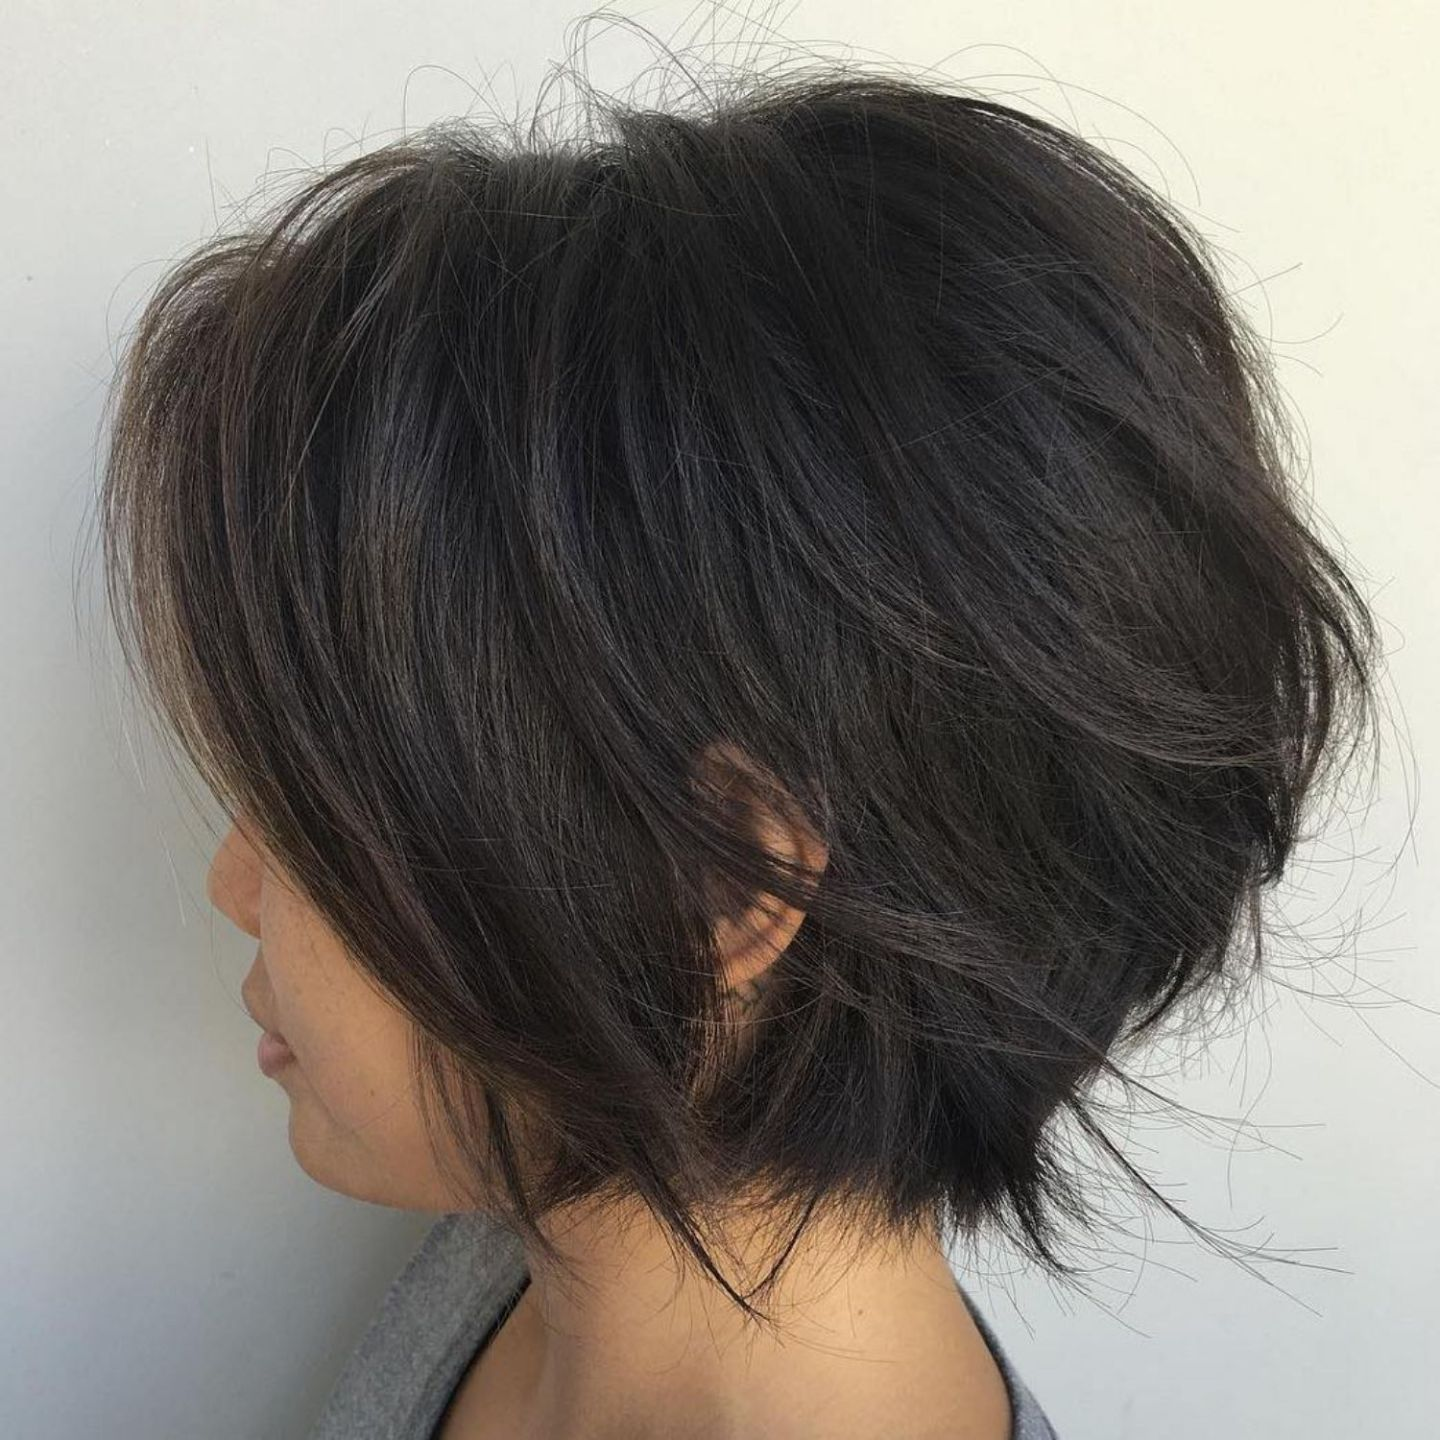 Short Jagged Bob Hair Styles Choppy Bob Hairstyles Thick Hair Styles